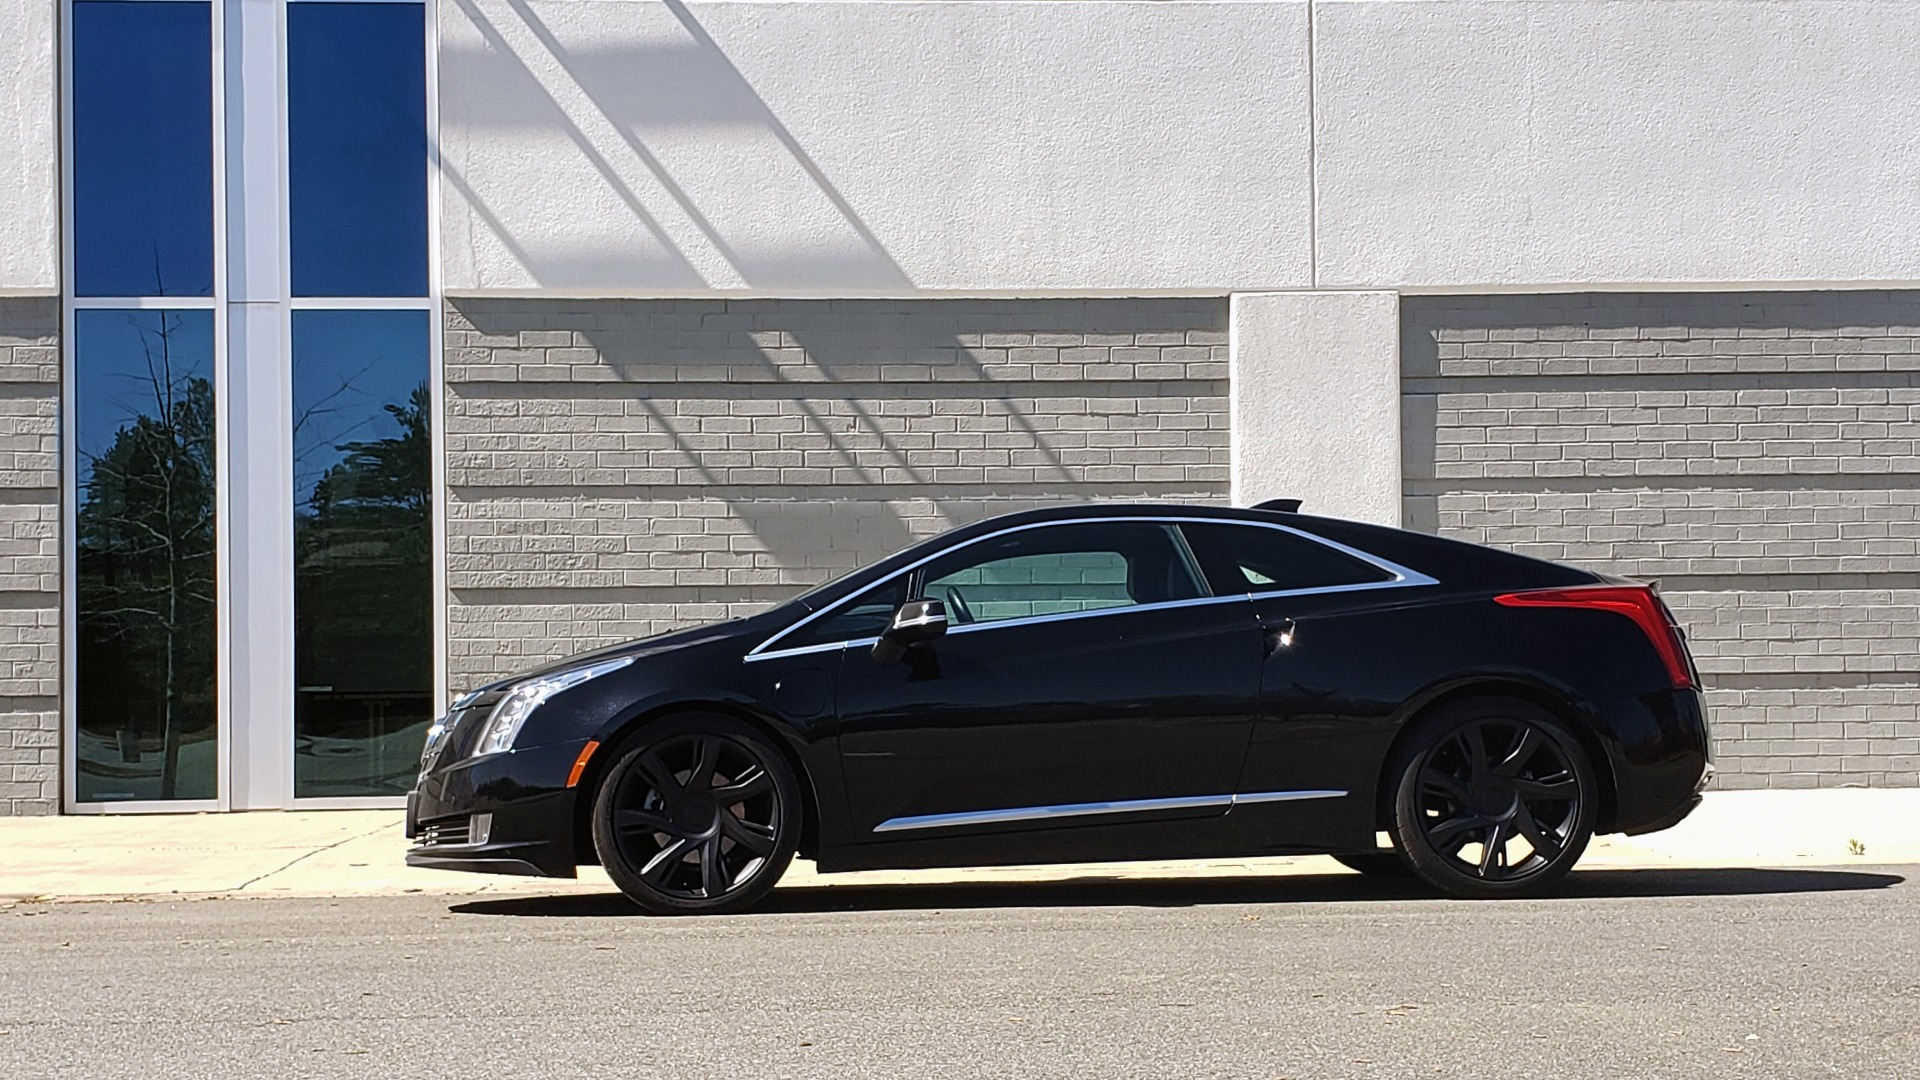 Used 2014 Cadillac ELR 2DR COUPE / HYBRID / NAV / BOSE / HEATED SEATS / REARVIEW for sale $19,995 at Formula Imports in Charlotte NC 28227 3